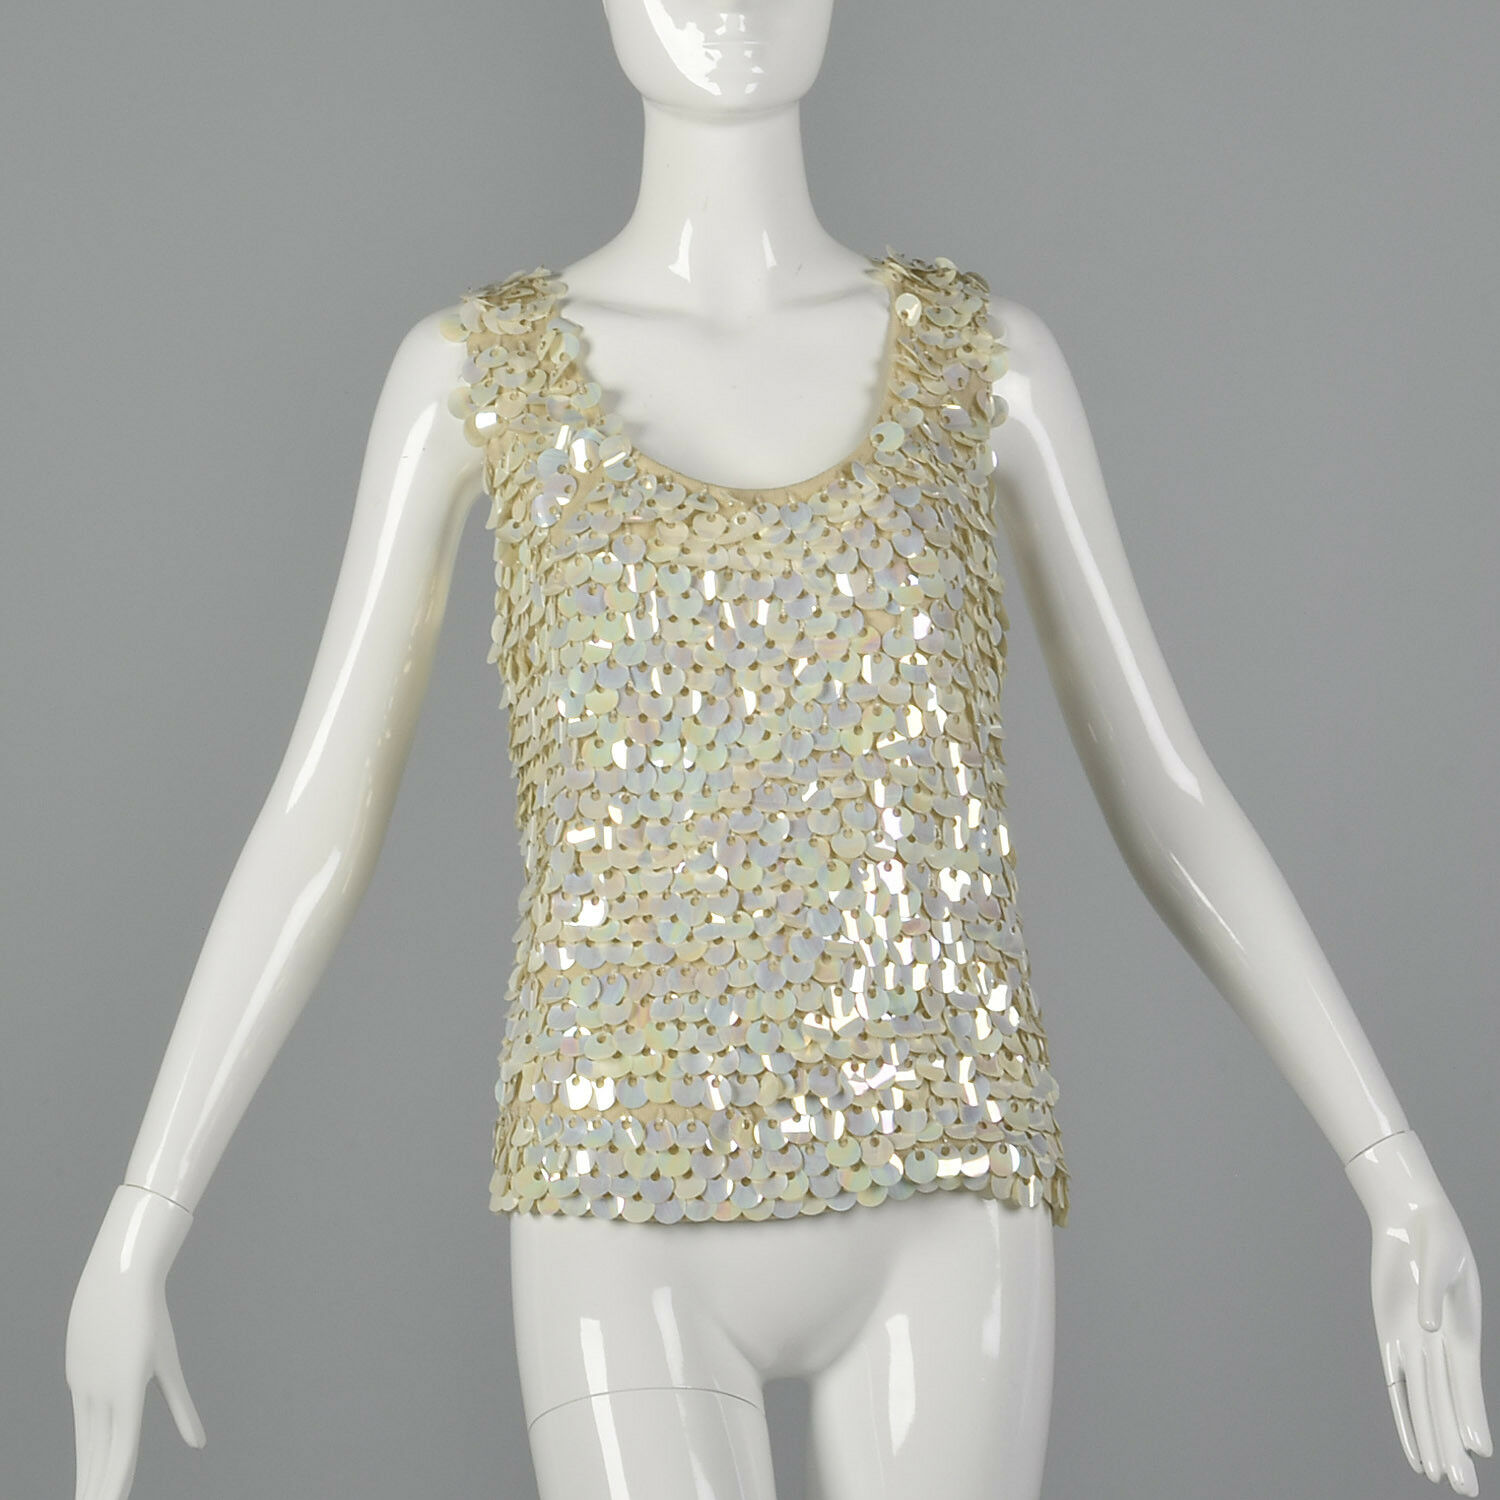 Large 1960s Sleeveless Knit Sweater with Paillettes Vintage Blouse 60s Sequin